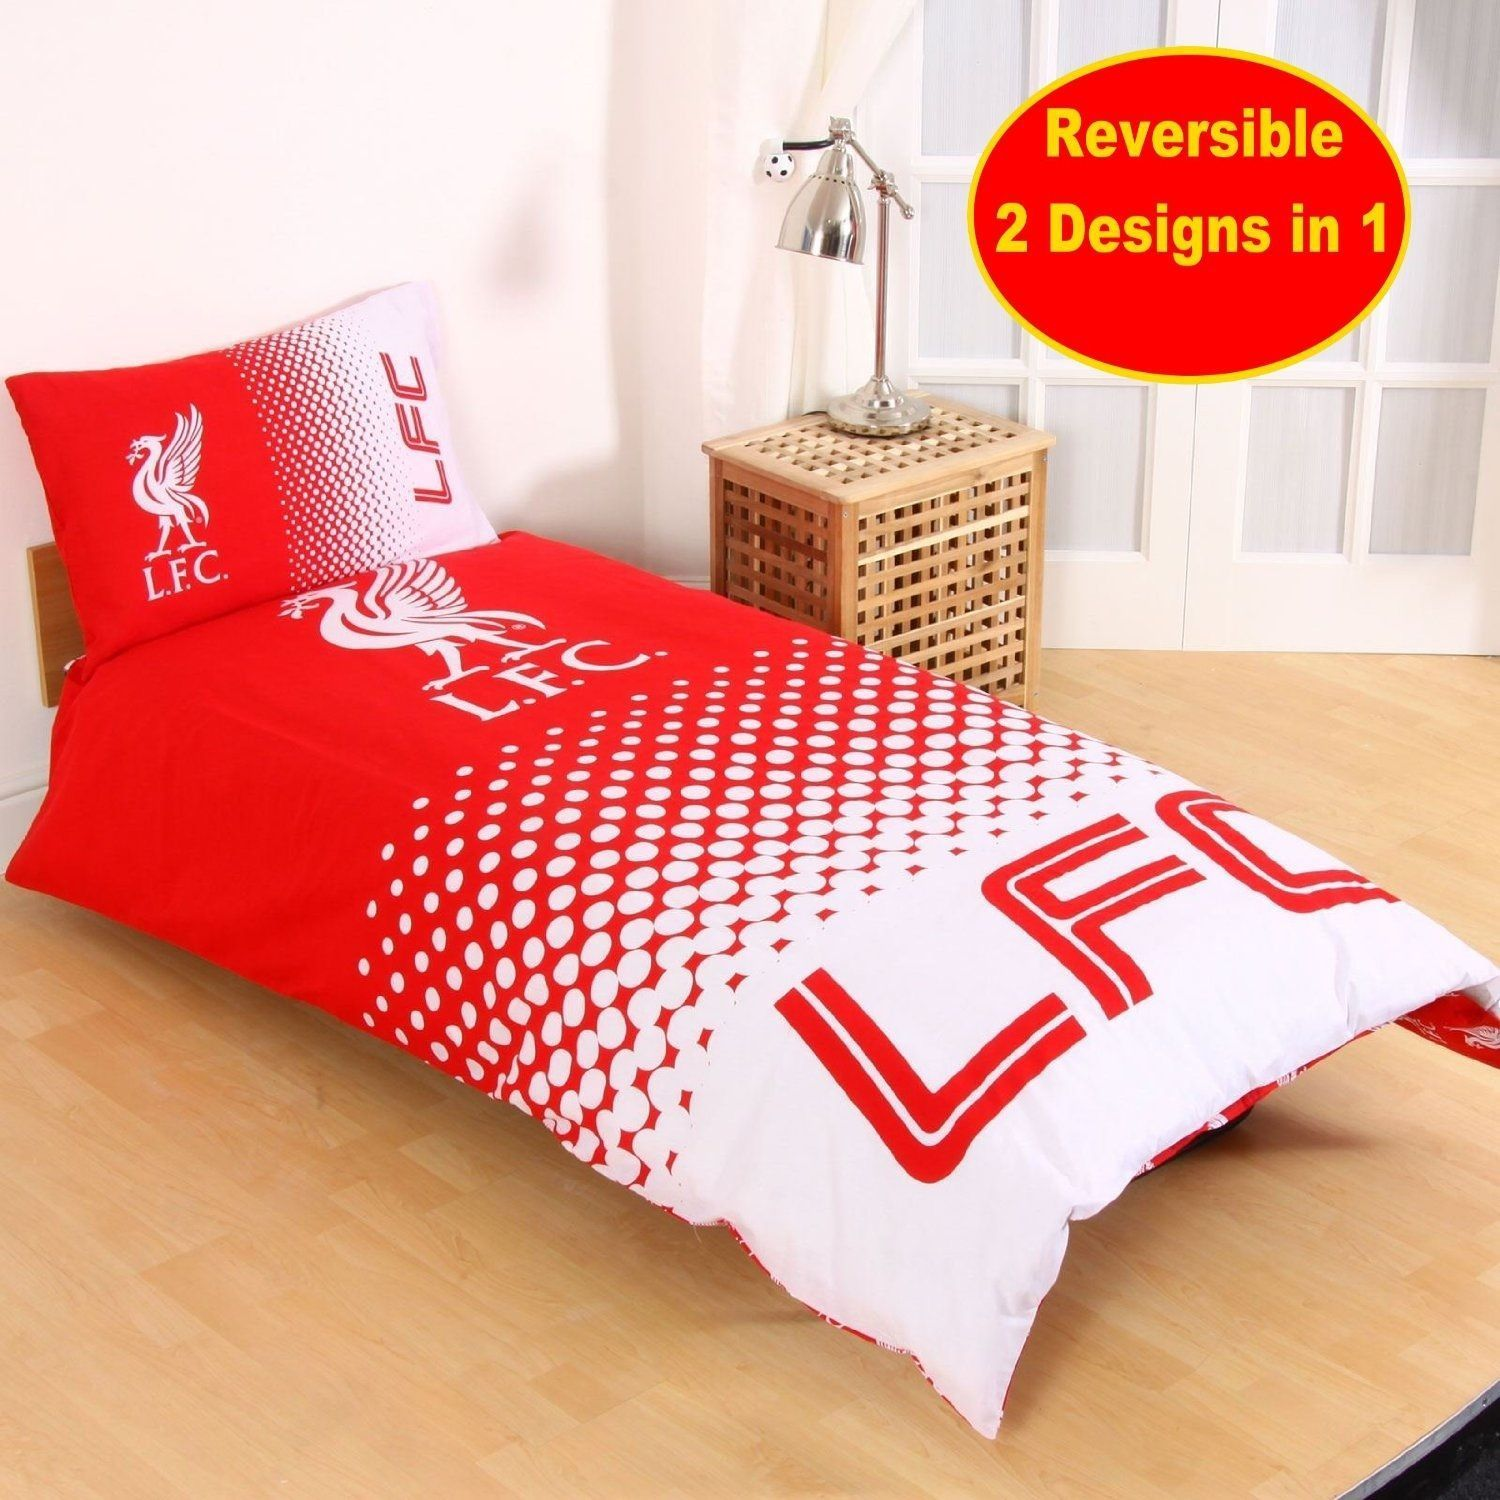 Liverpool Wallpaper For Bedroom Liverpool Fc Bedroom Interior Design And Furniture Ideas